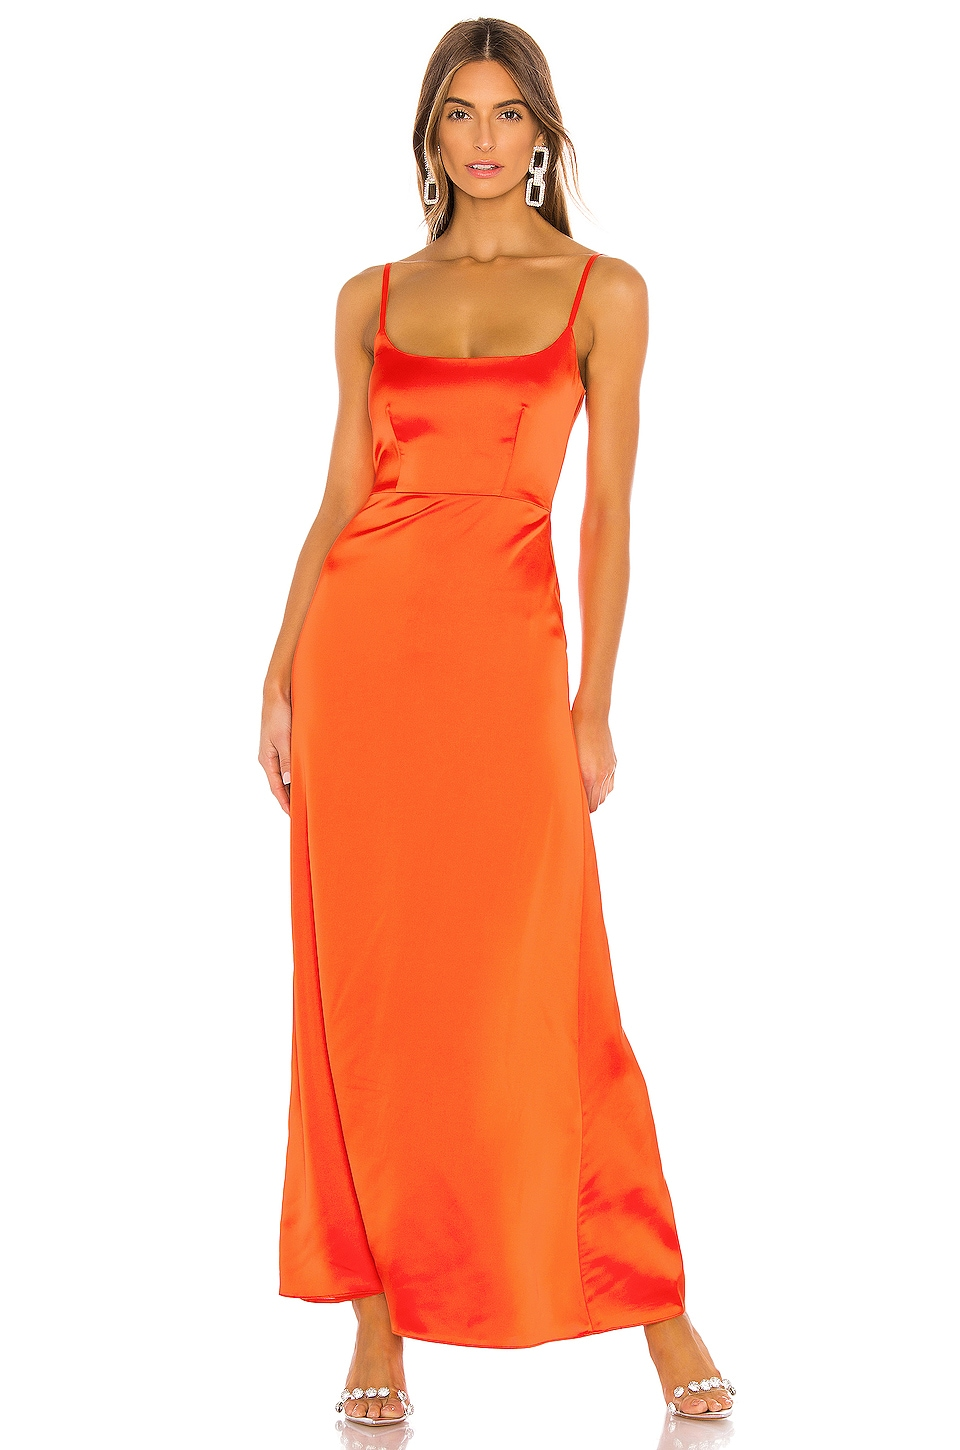 NBD Mieko Gown in Red Orange